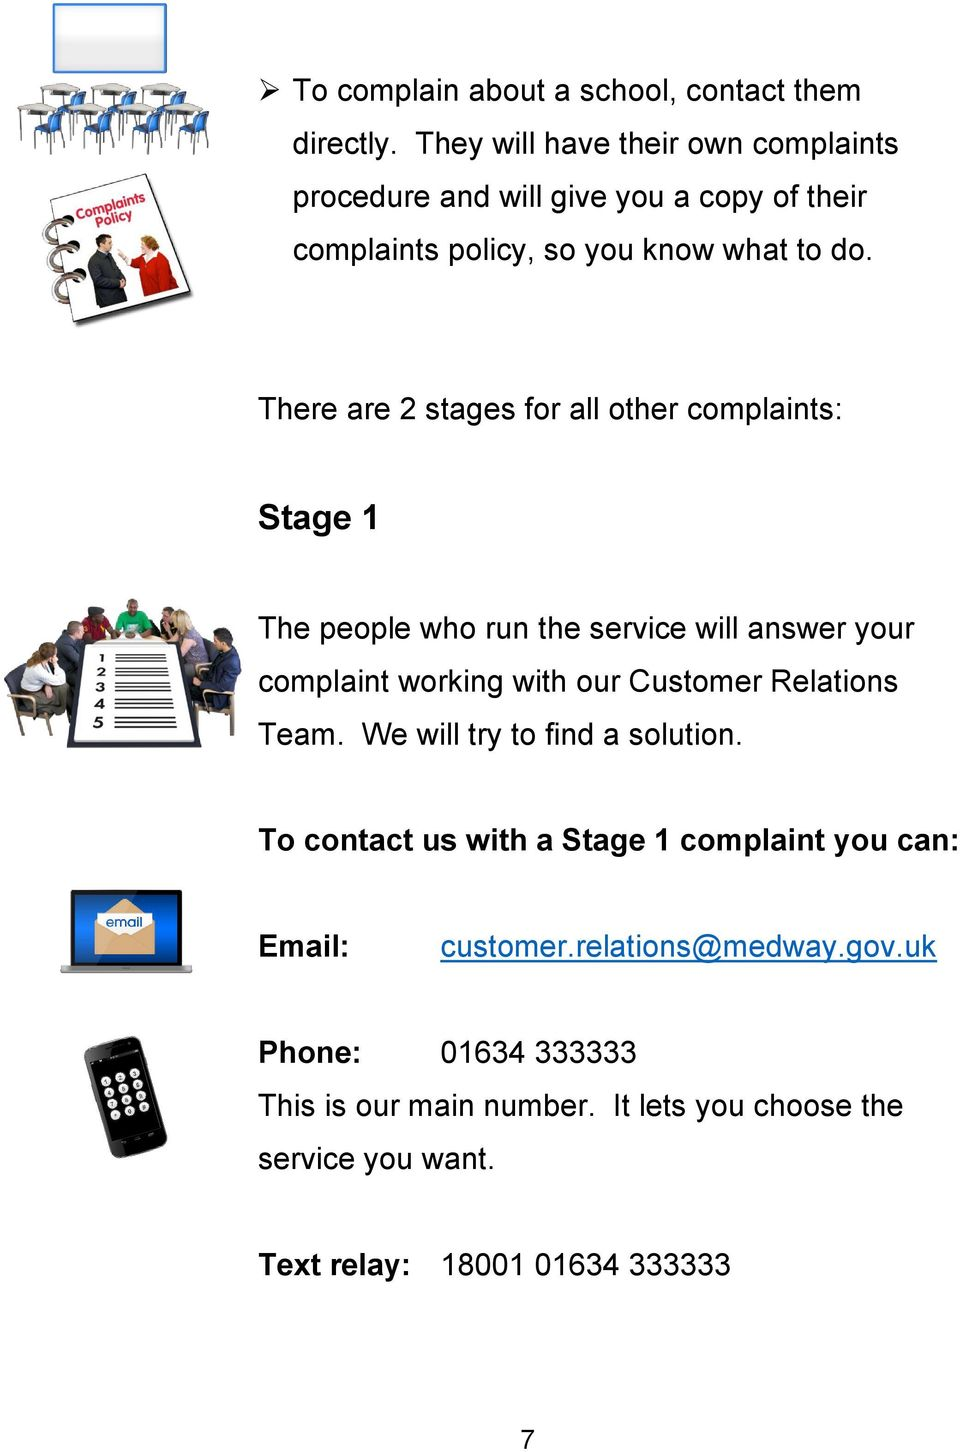 There are 2 stages for all other complaints: Stage 1 The people who run the service will answer your complaint working with our Customer